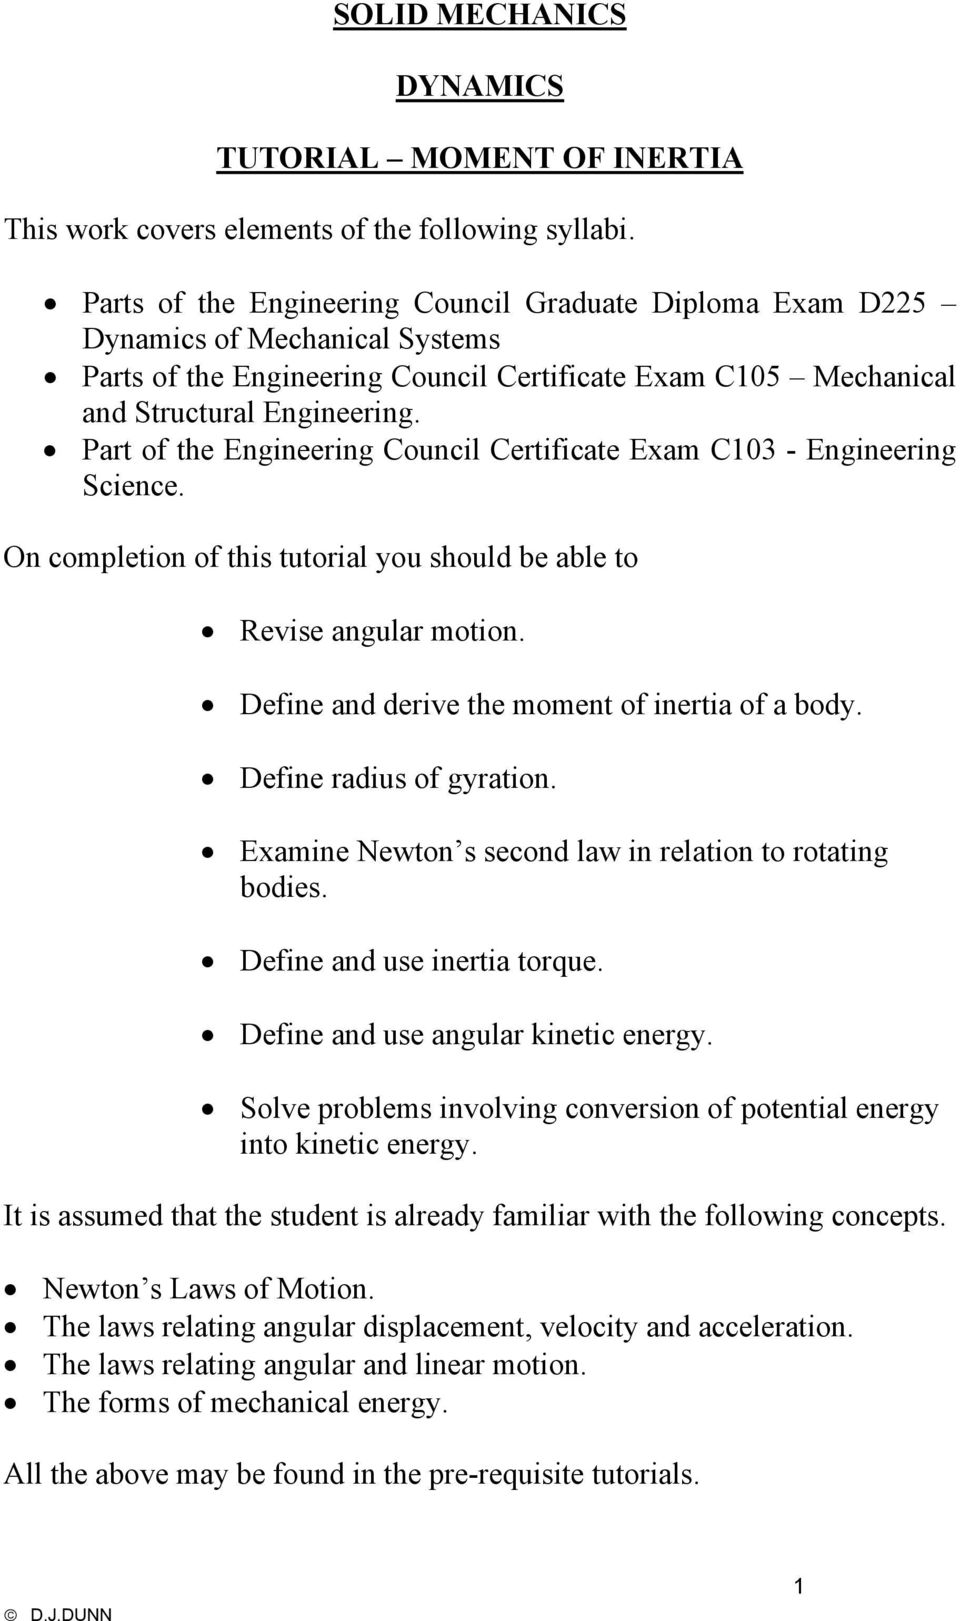 Part of the Engineering Council Certificate Exam C1 - Engineering Science. On completion of this tutorial you should be able to evise angular motion. Define and derive the moment of inertia of a body.